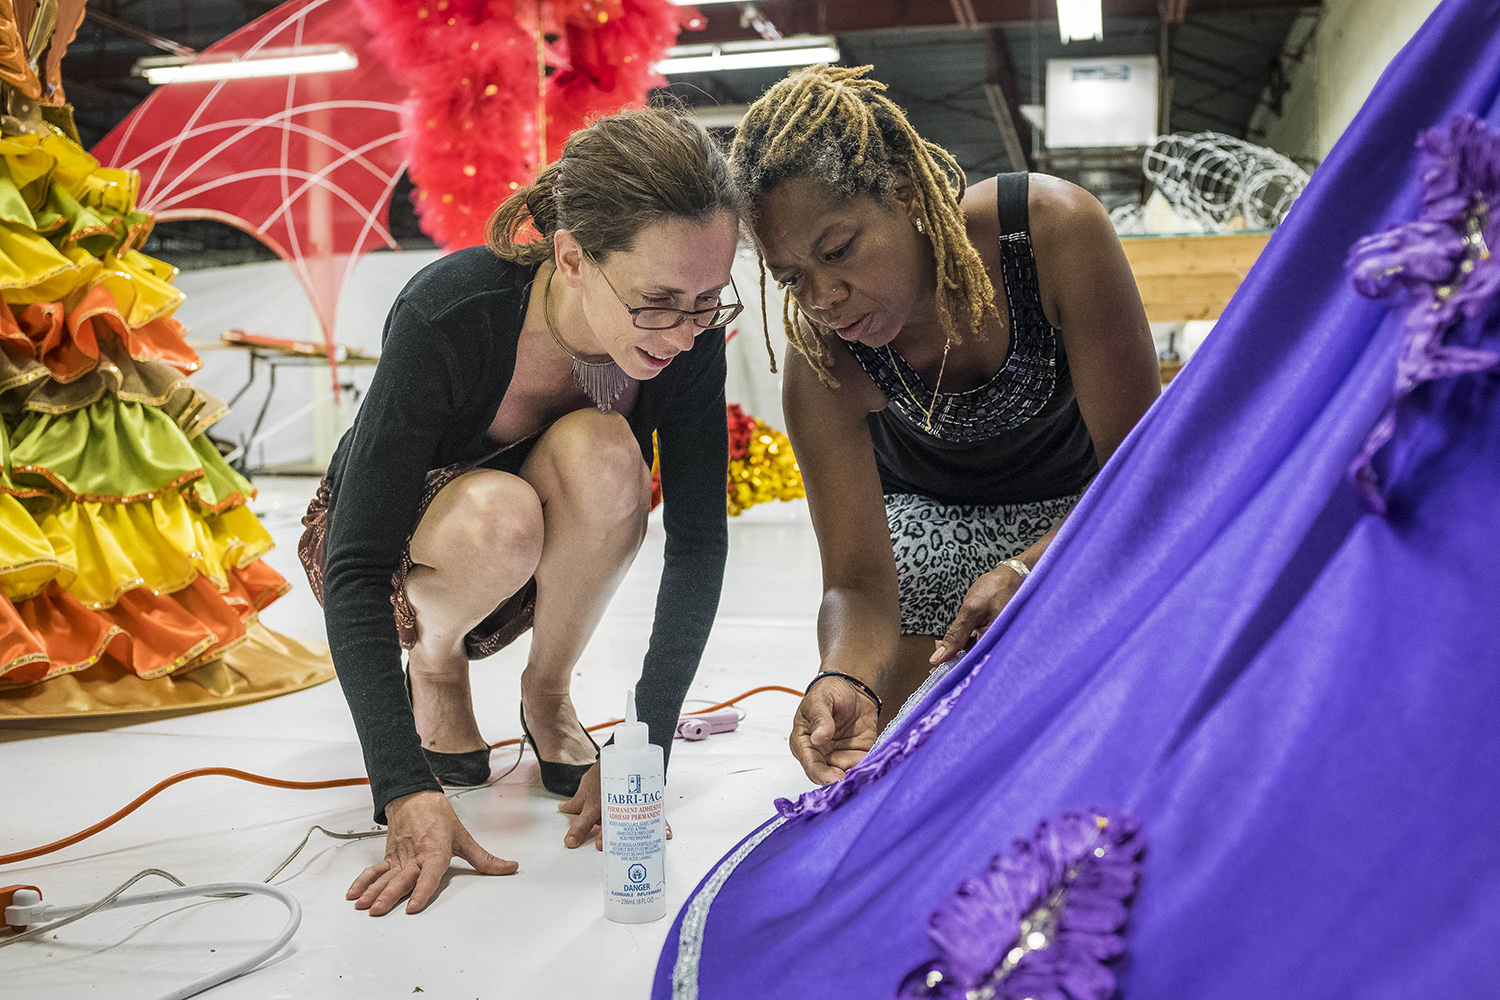 Volunteers Emilsa Sealy (right) and Emily Flude work on the final details of a dress that will be used by a member of the Aristokids section of the Durham Mas, Scarborough, Saturday July 9, 2017.